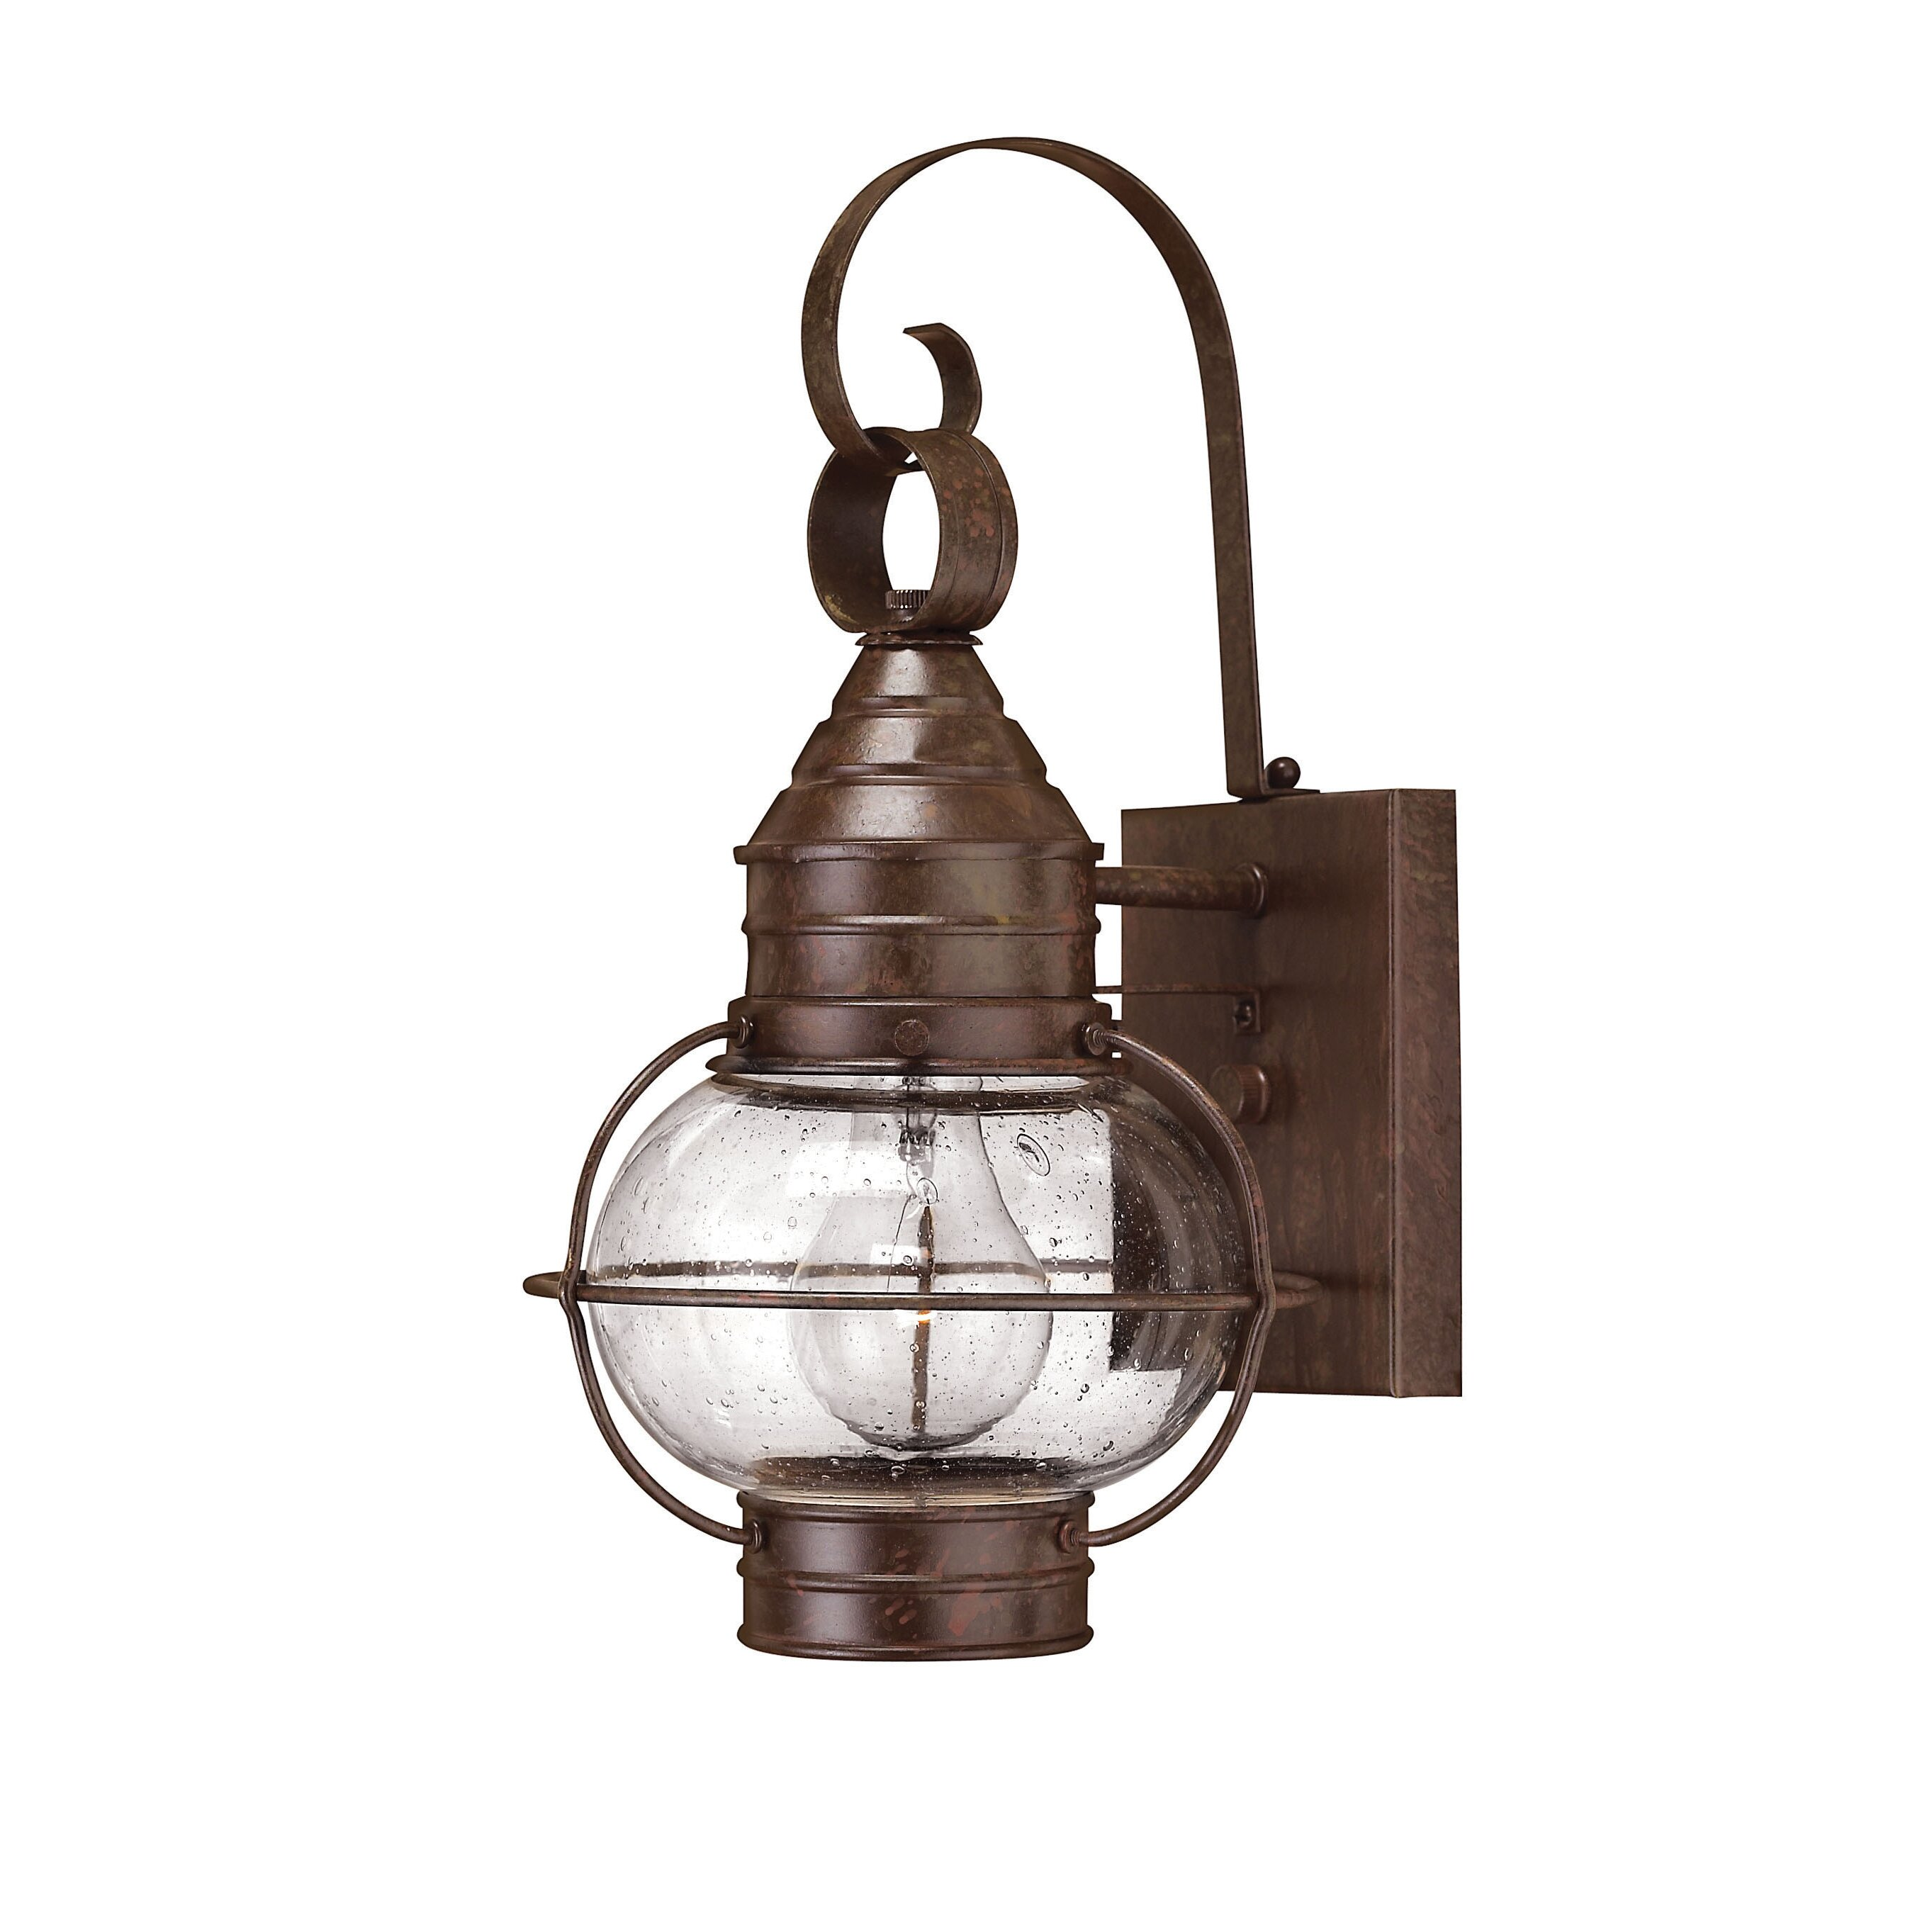 Wayfair Outdoor Wall Lights : Hinkley Lighting Cape Cod 1 Light Outdoor Wall Lantern & Reviews Wayfair